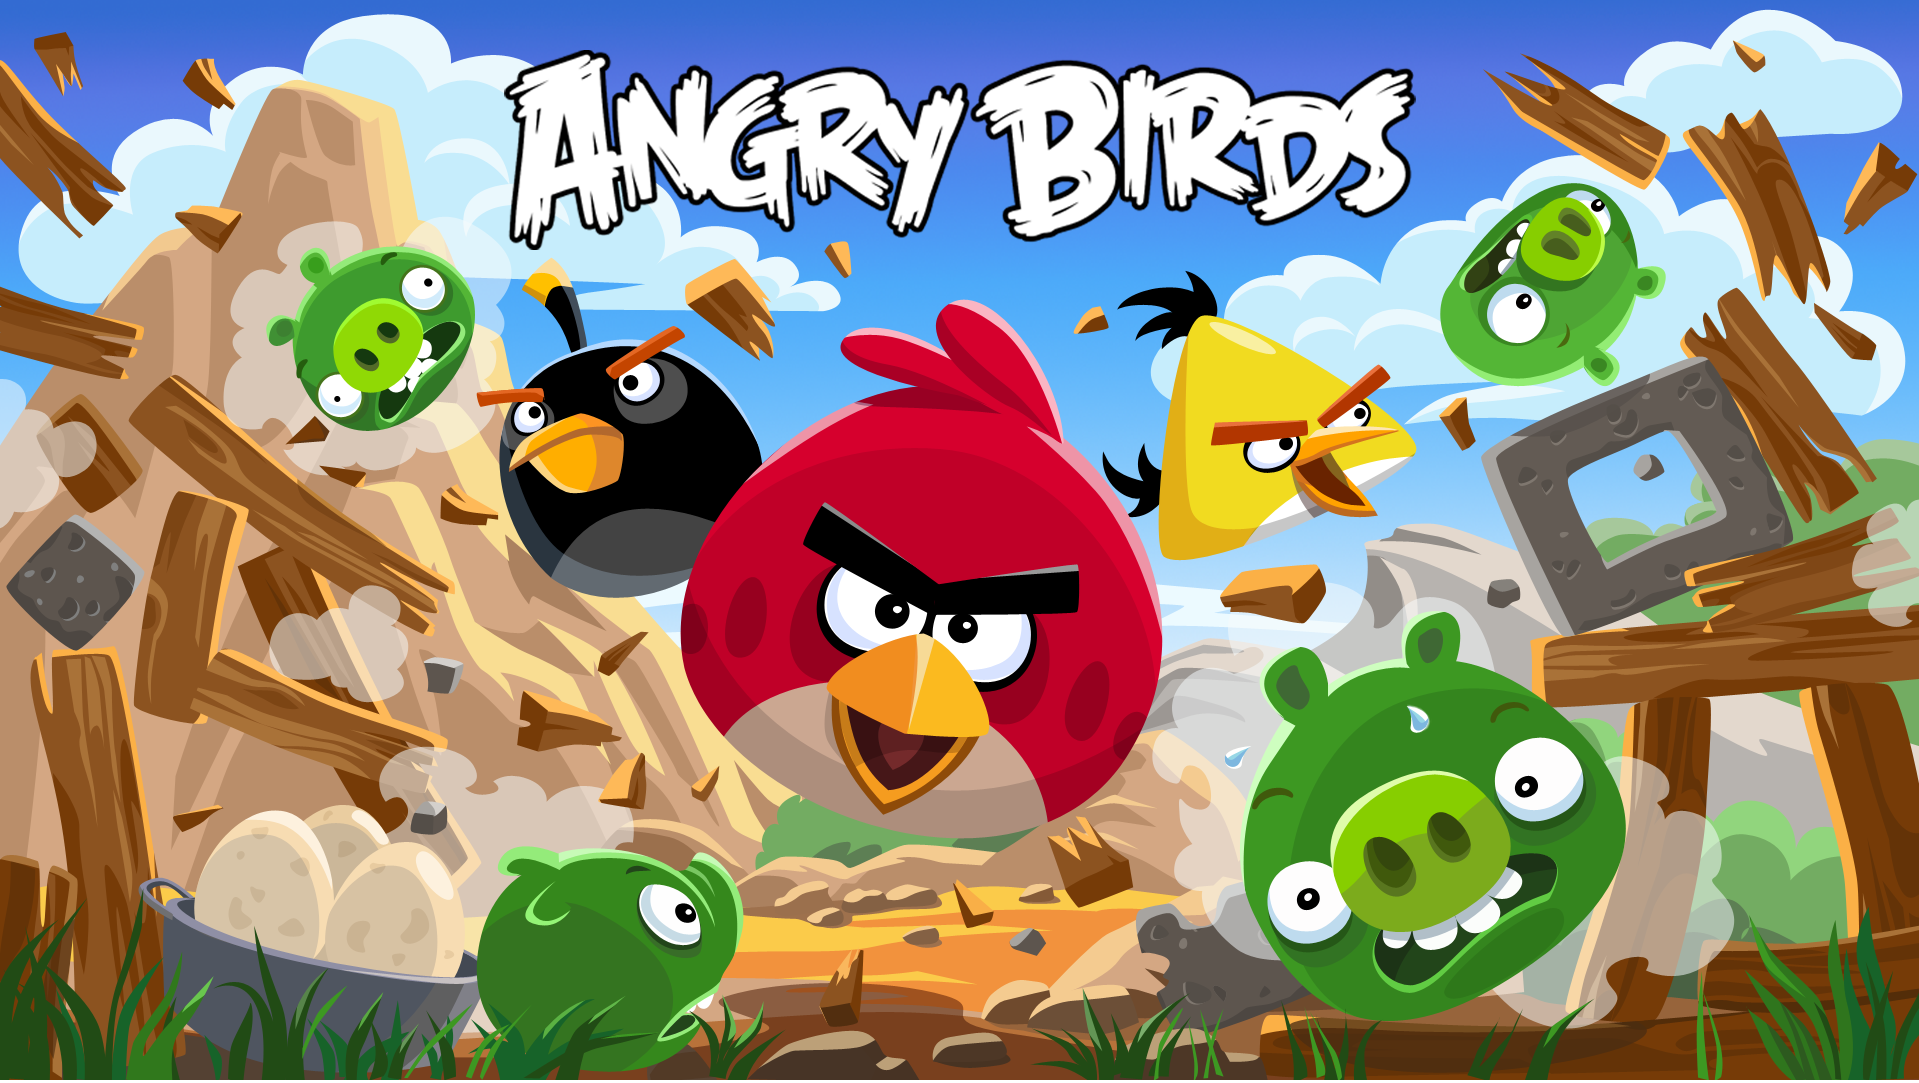 http://images3.wikia.nocookie.net/__cb20120622150126/angrybirds/images/7/7f/Loading_screen.png